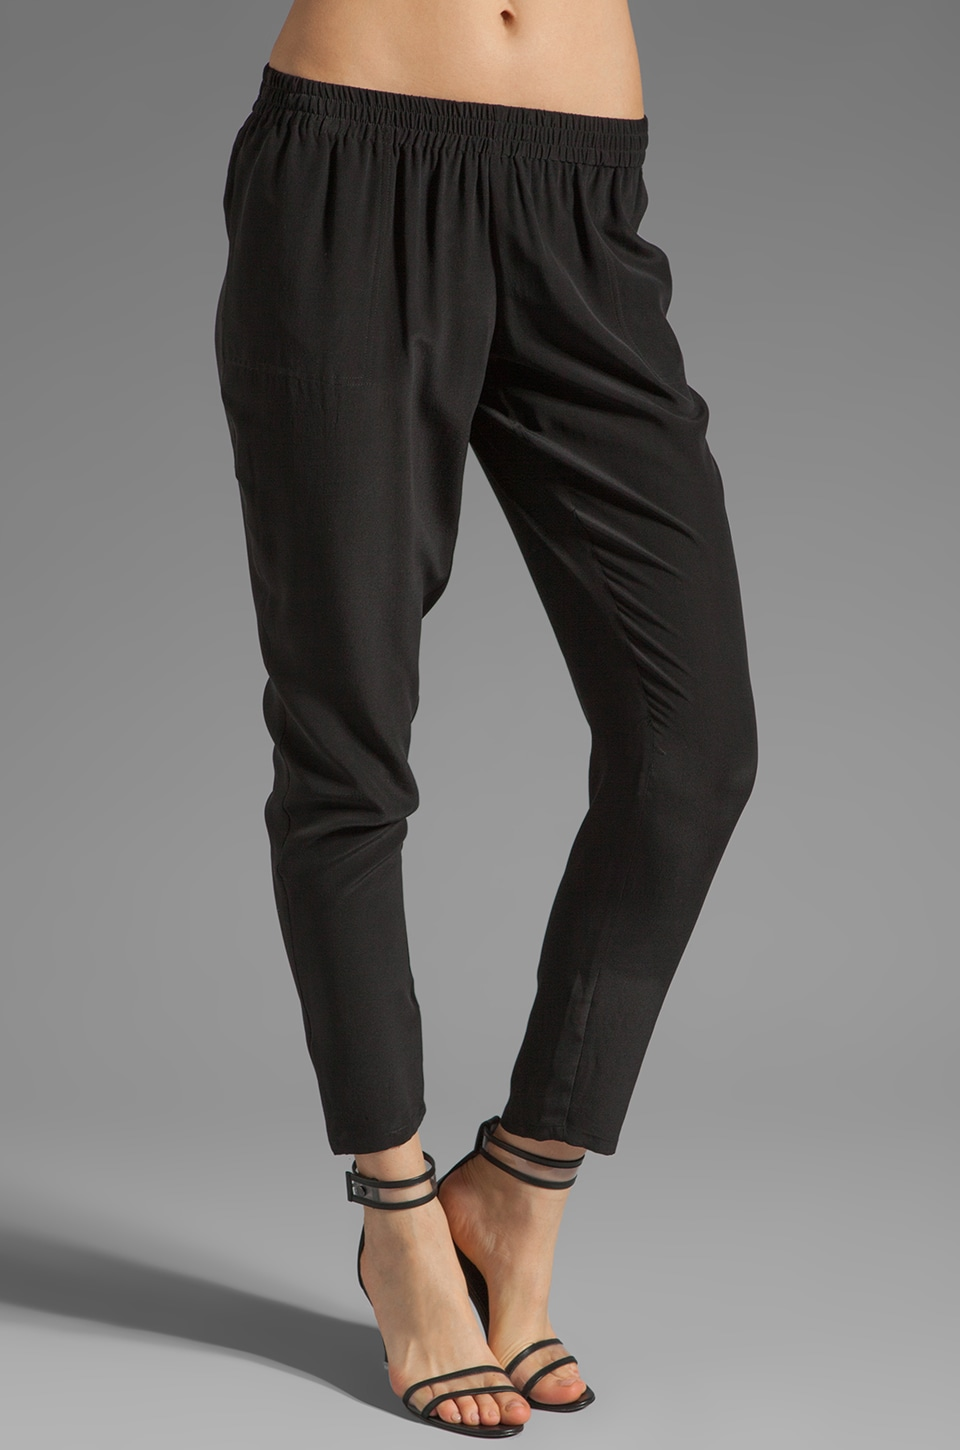 Joie Julietta Silk Pants in Caviar